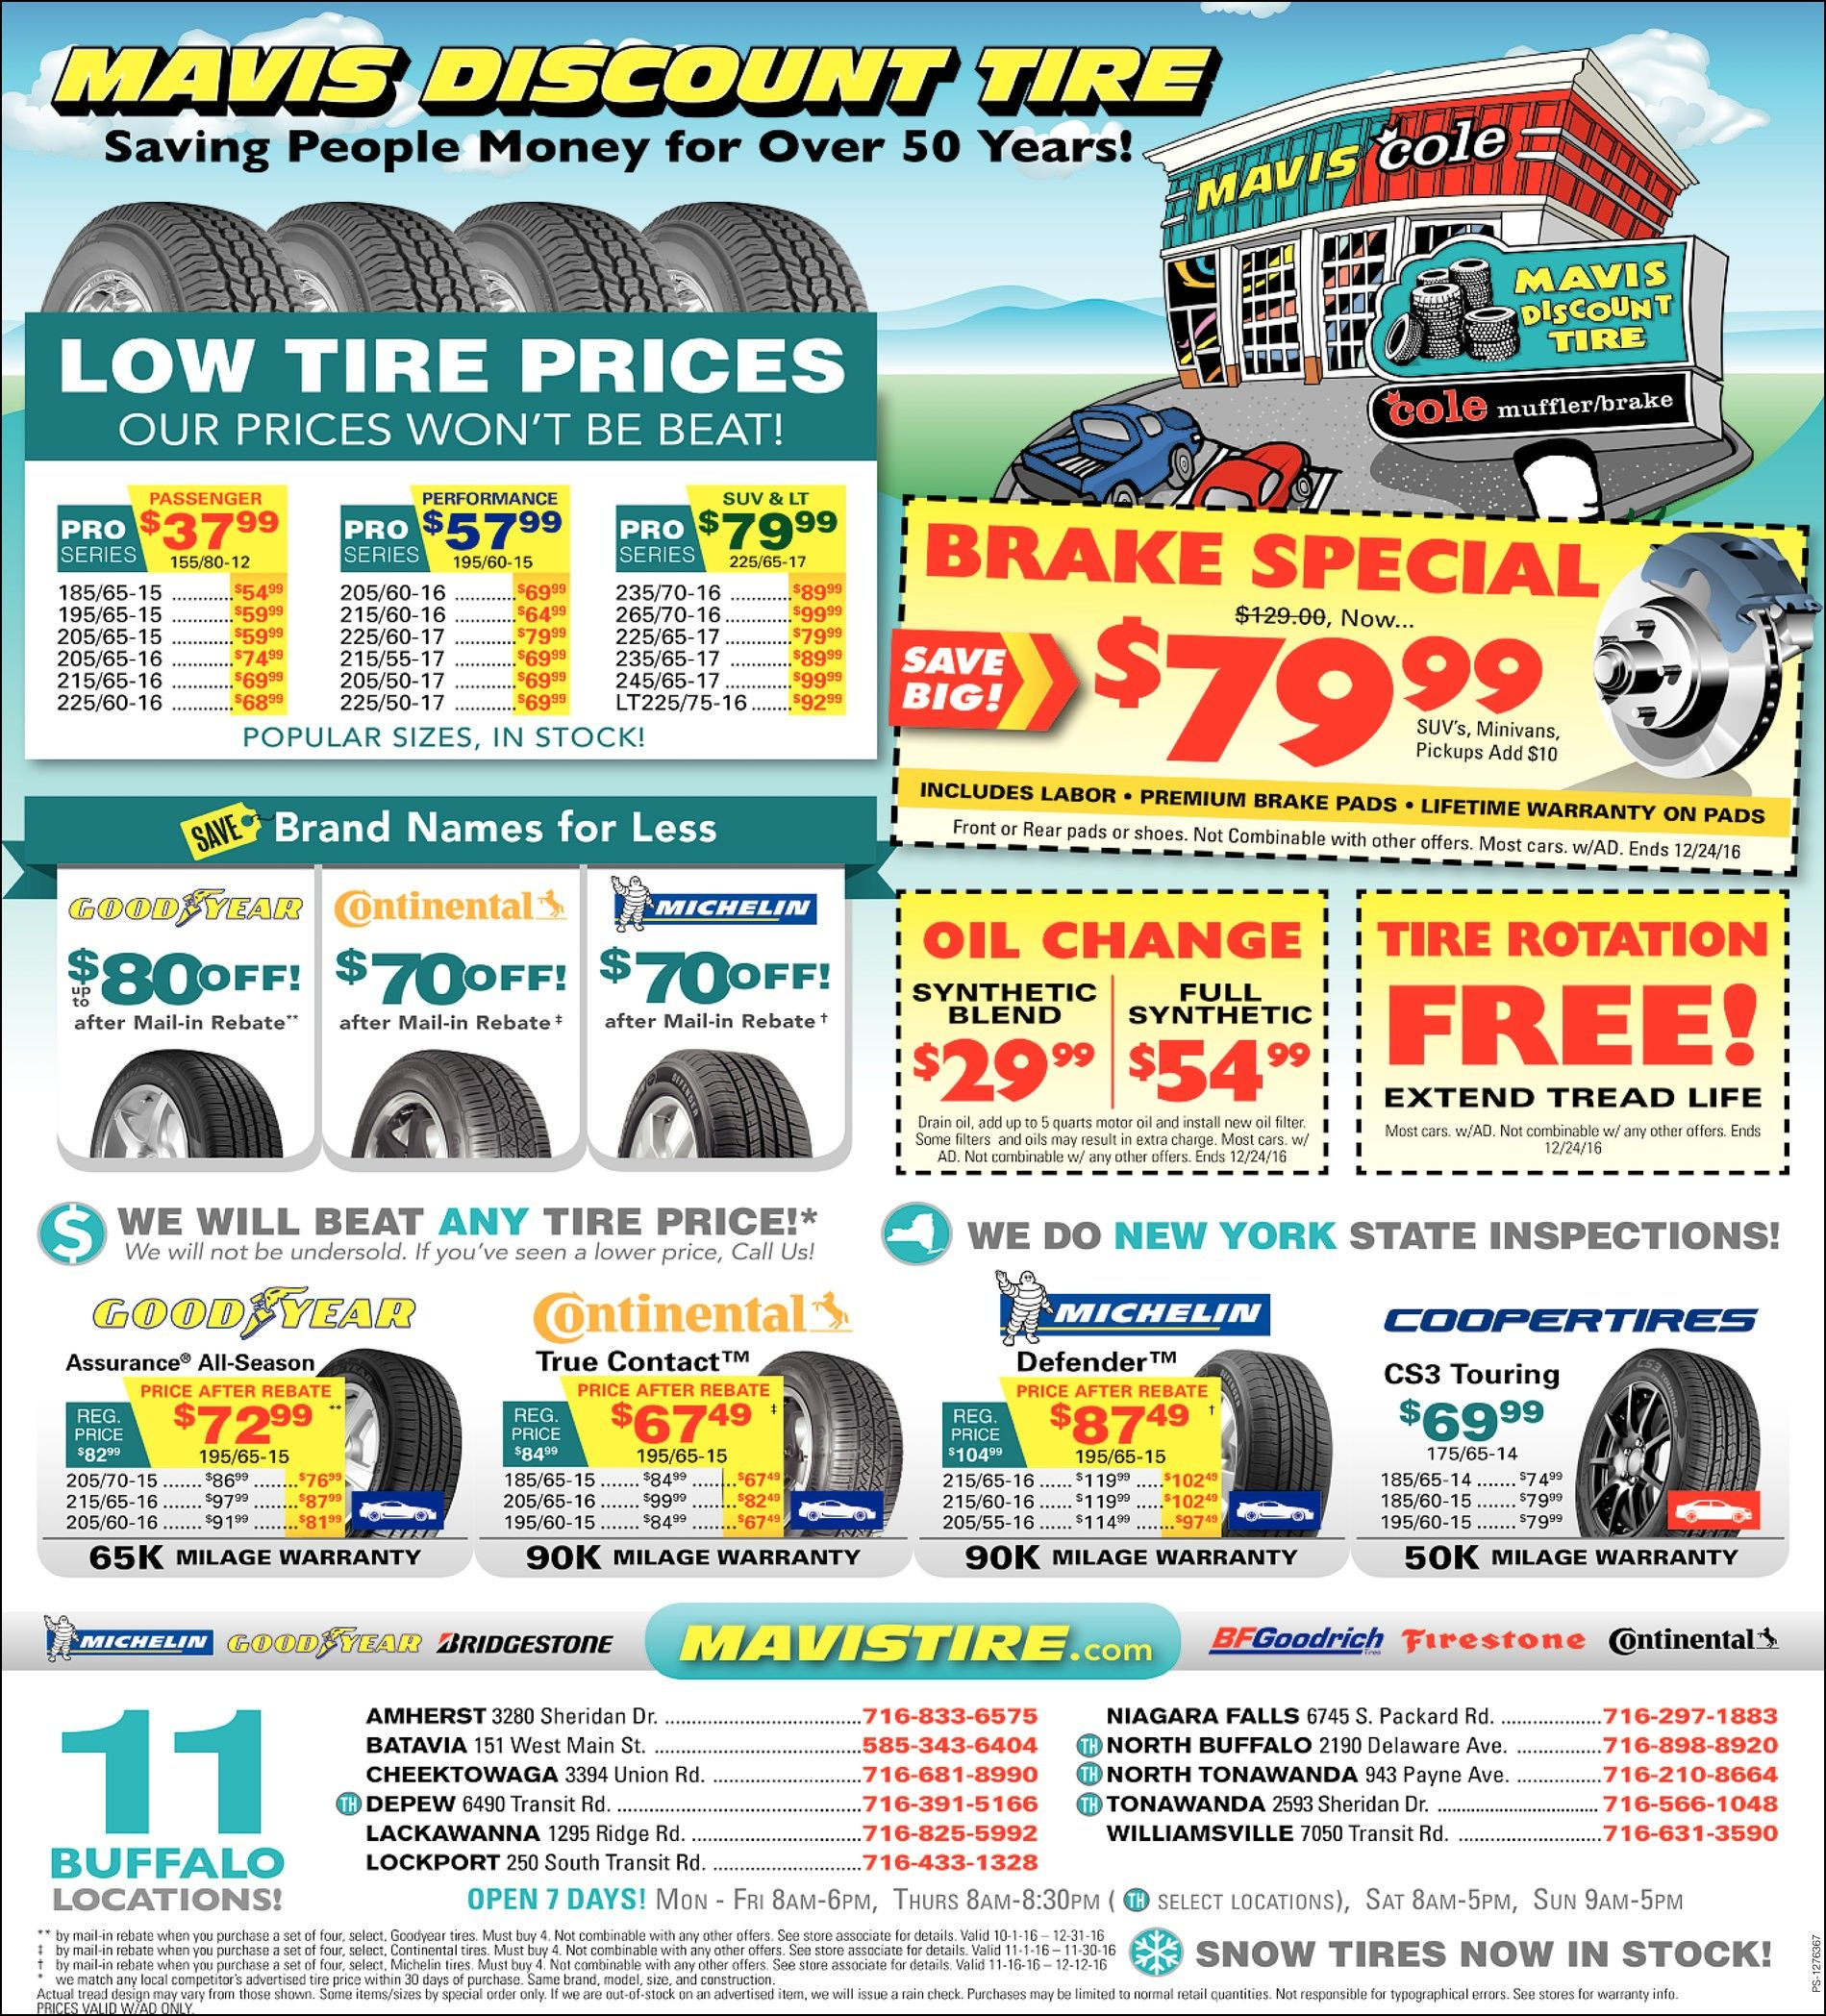 Mavis Tire Discount Coupons Wheels Tires Gallery